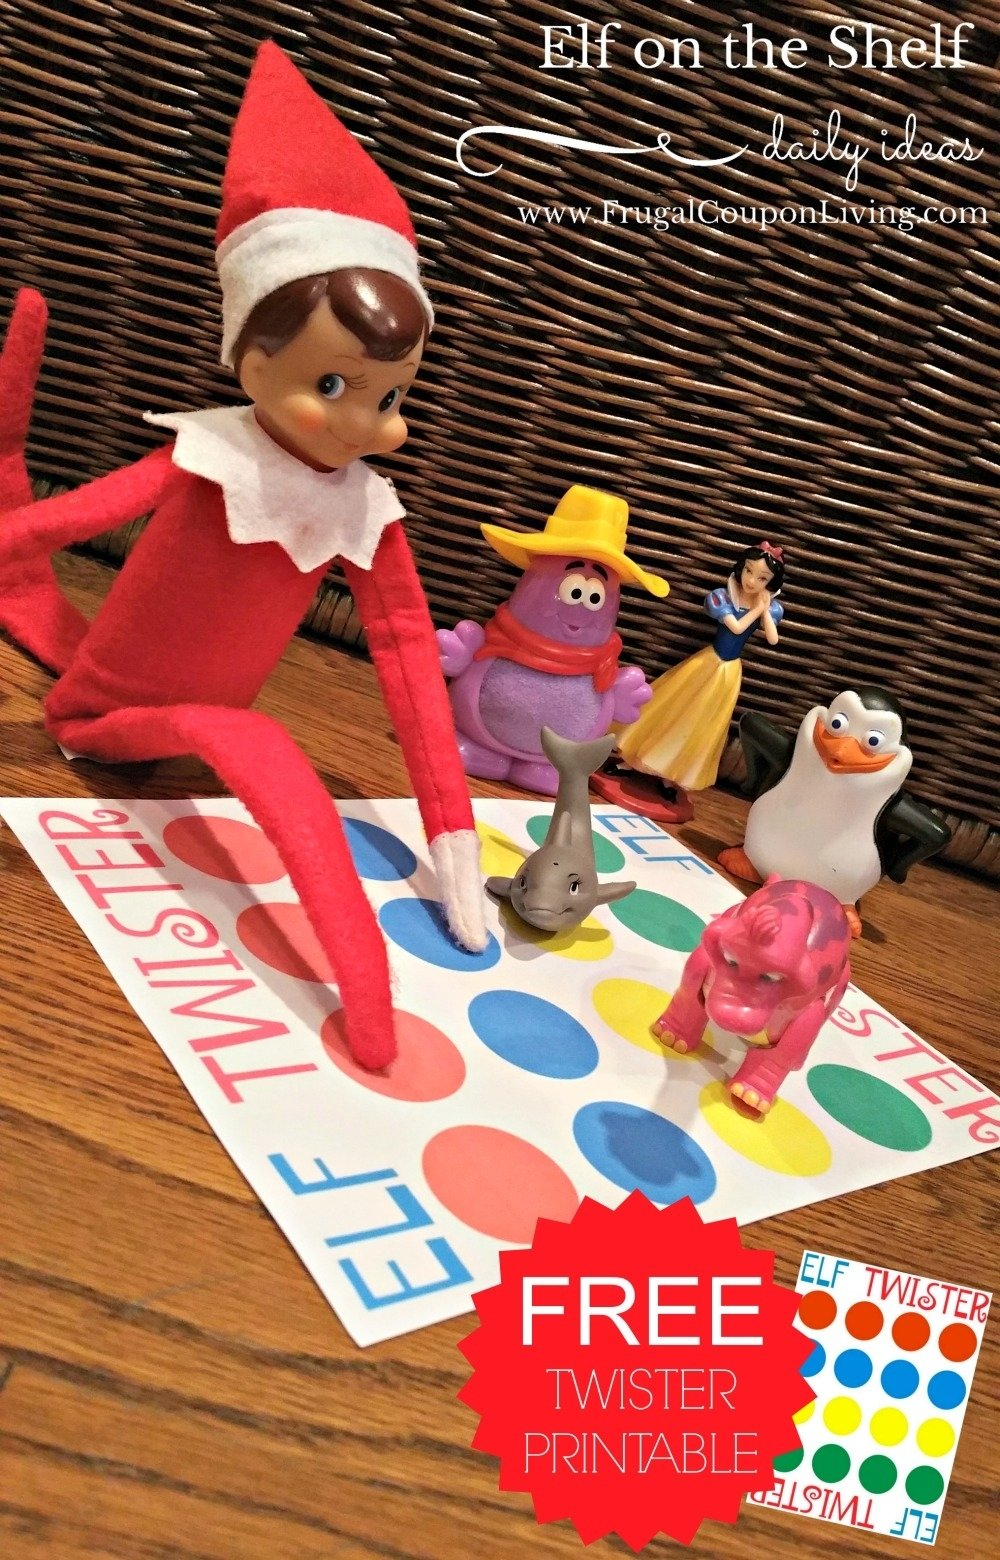 10 Stunning The Elf On The Shelf Ideas elf on the shelf ideas elf twister printable 3